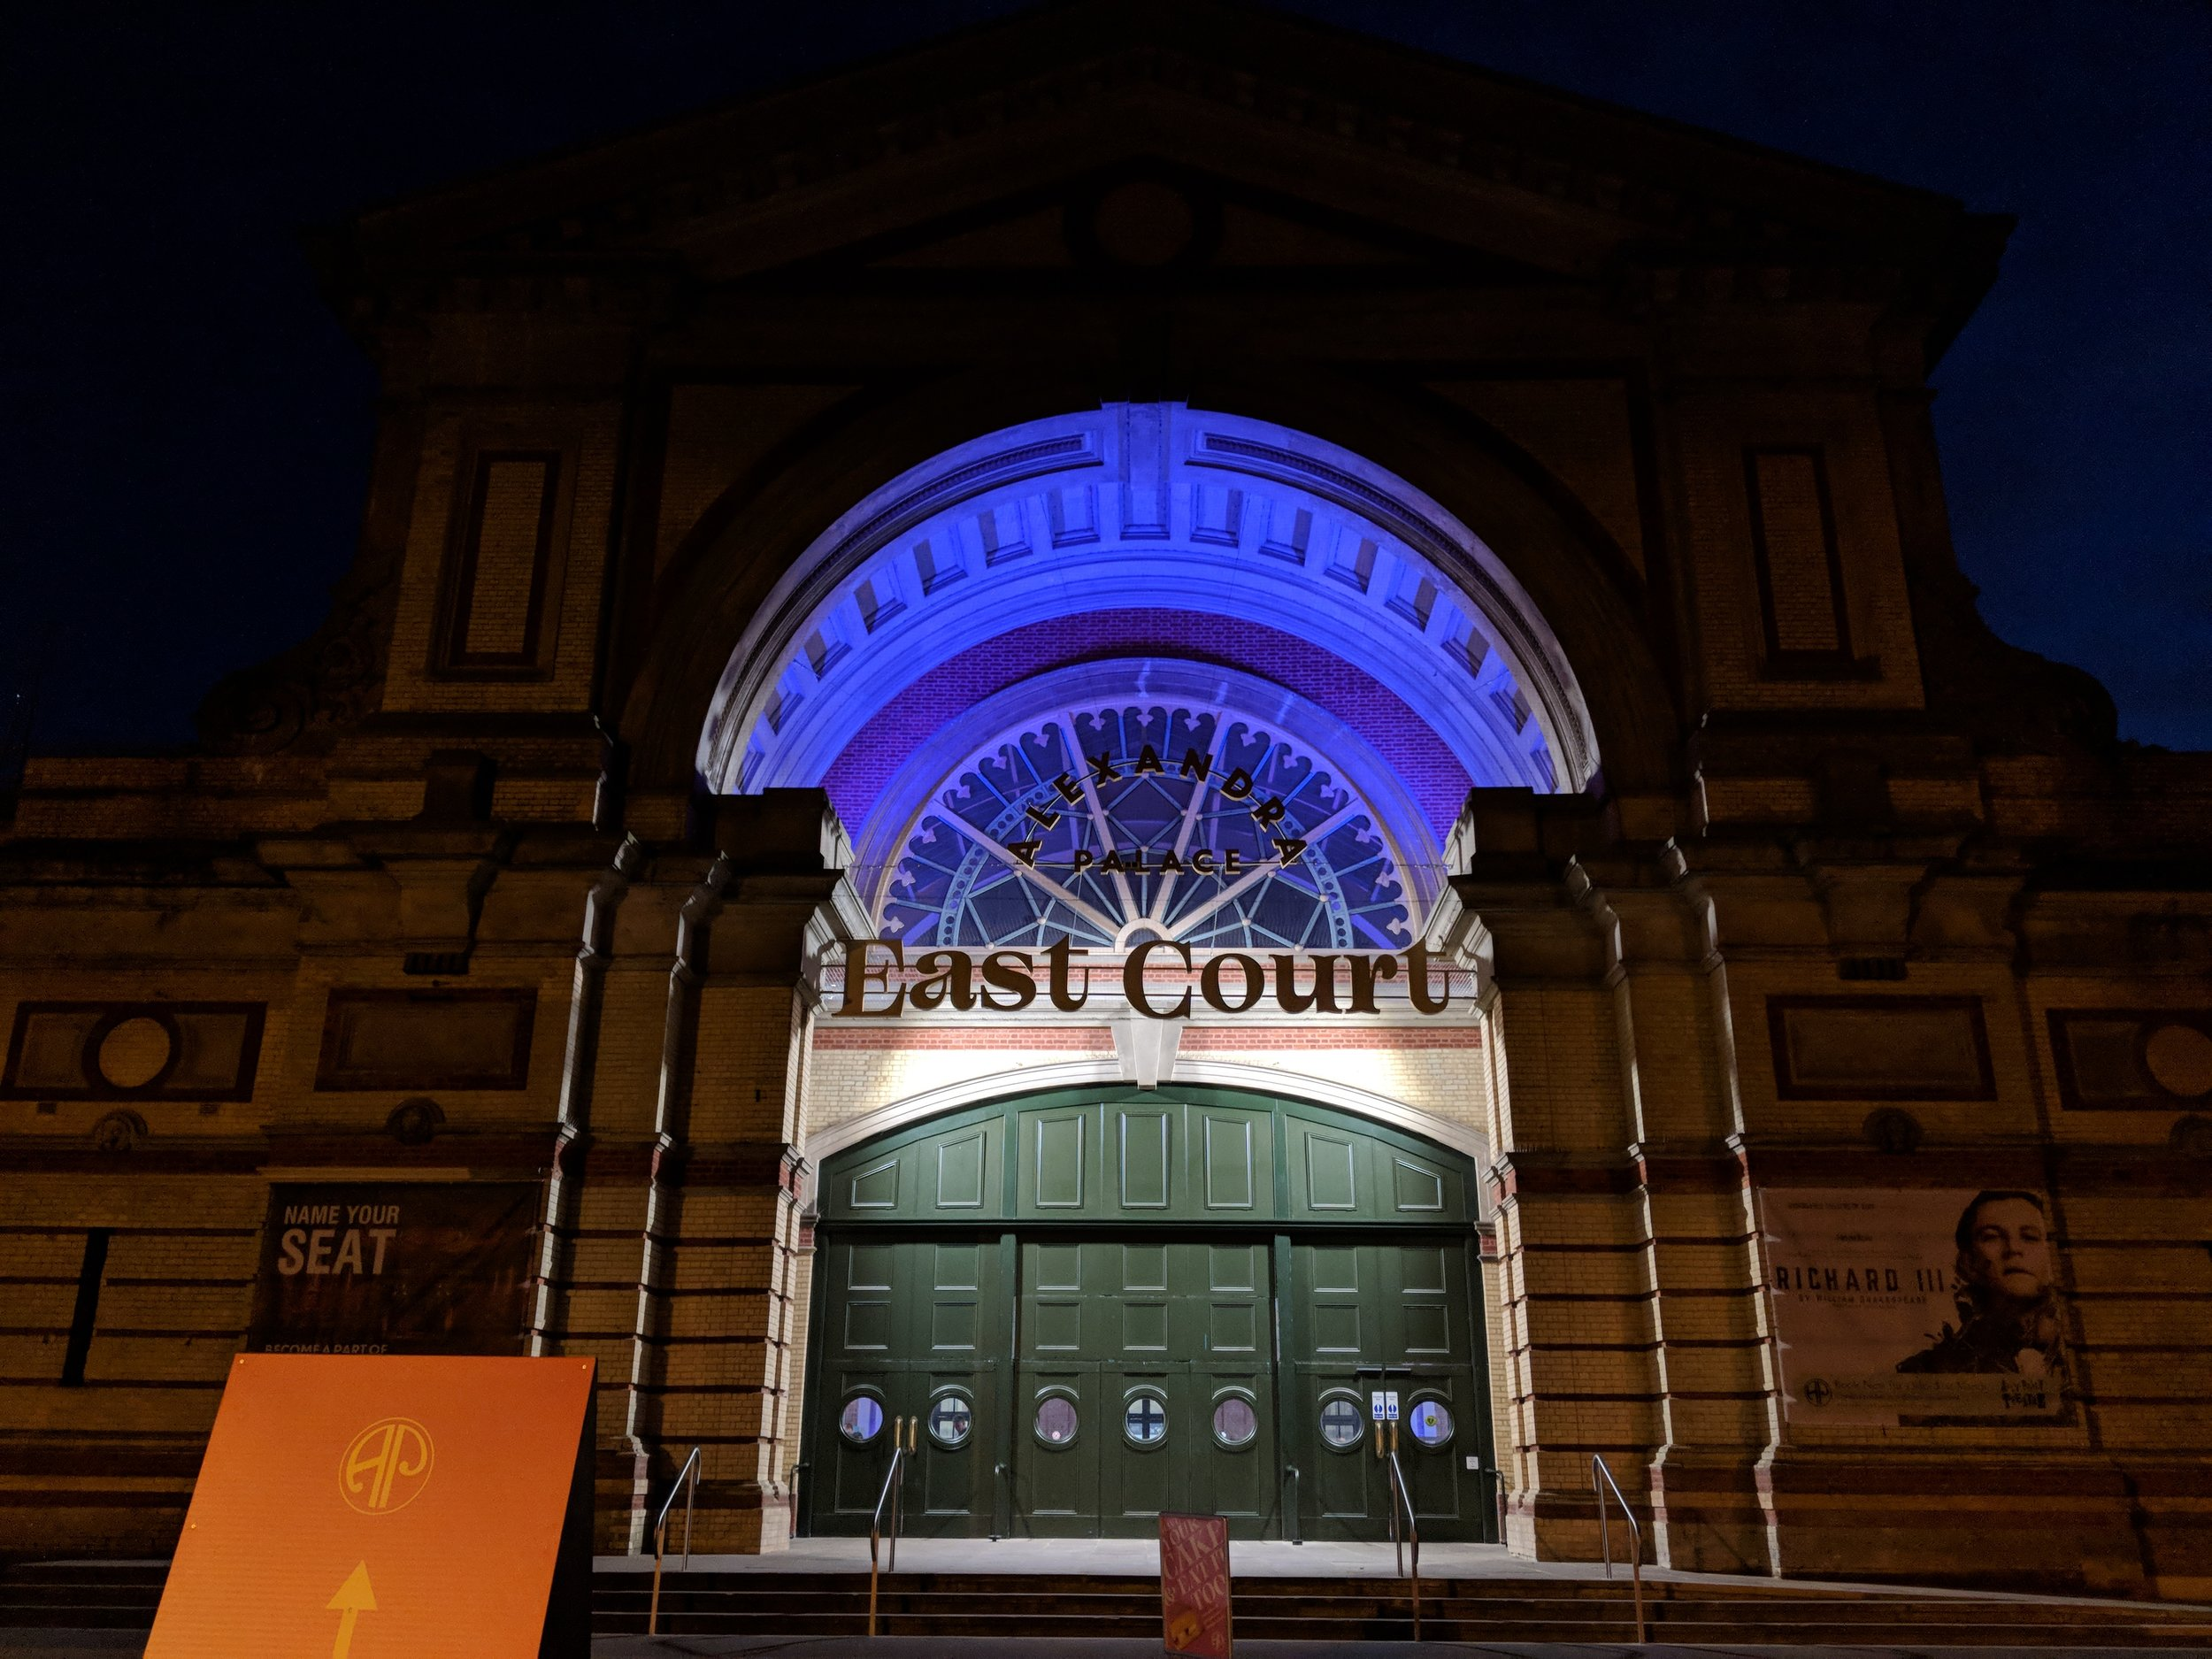 ALEXANDRA Palace Theatre - visited 27/03/2019